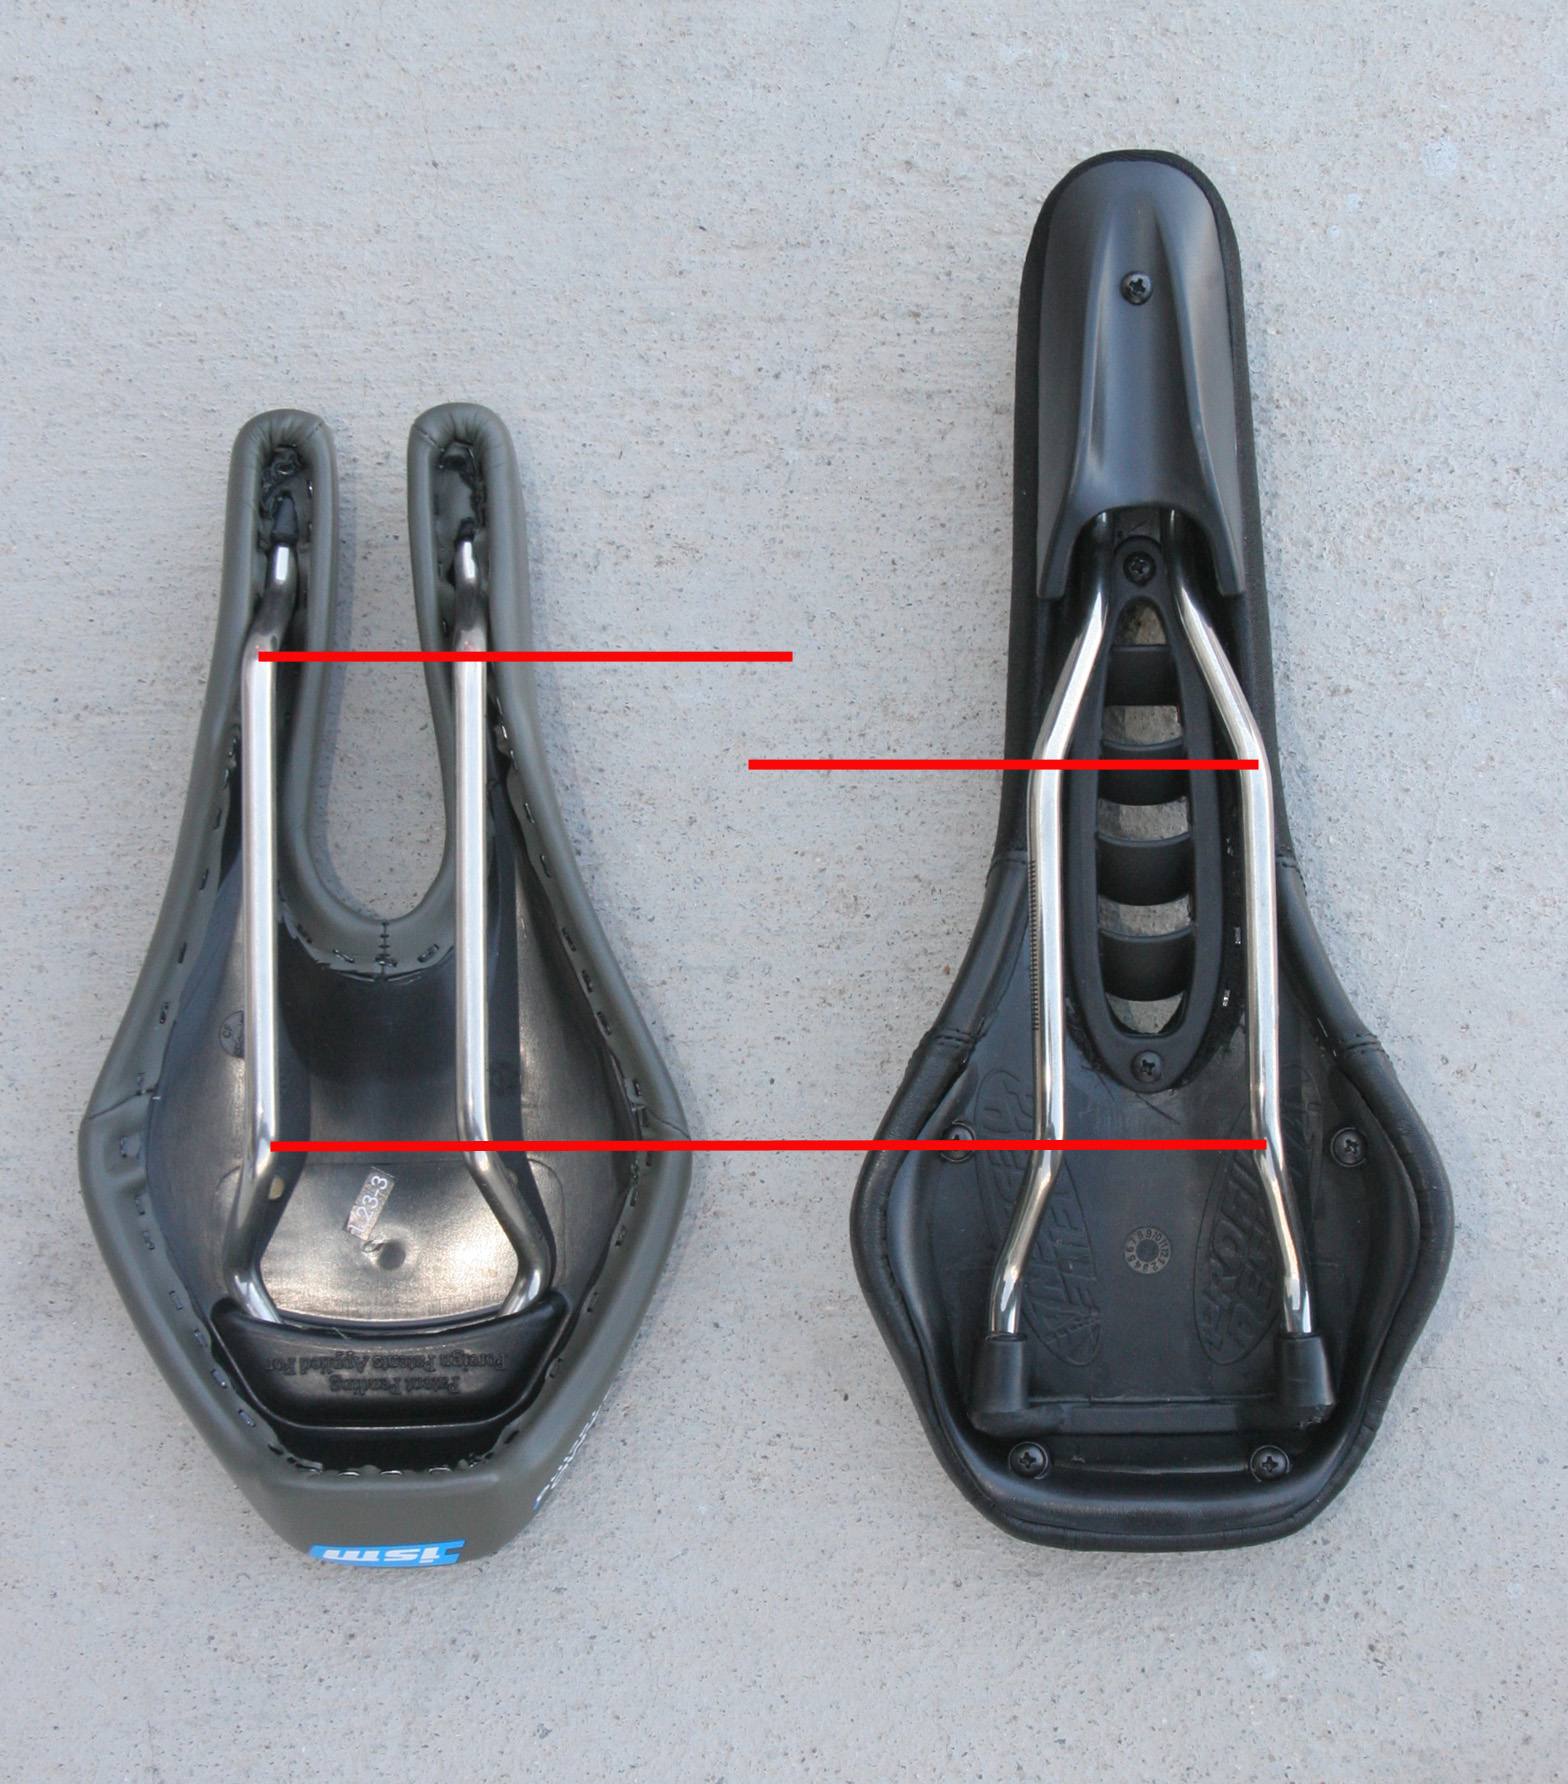 Triathlon Saddle Review